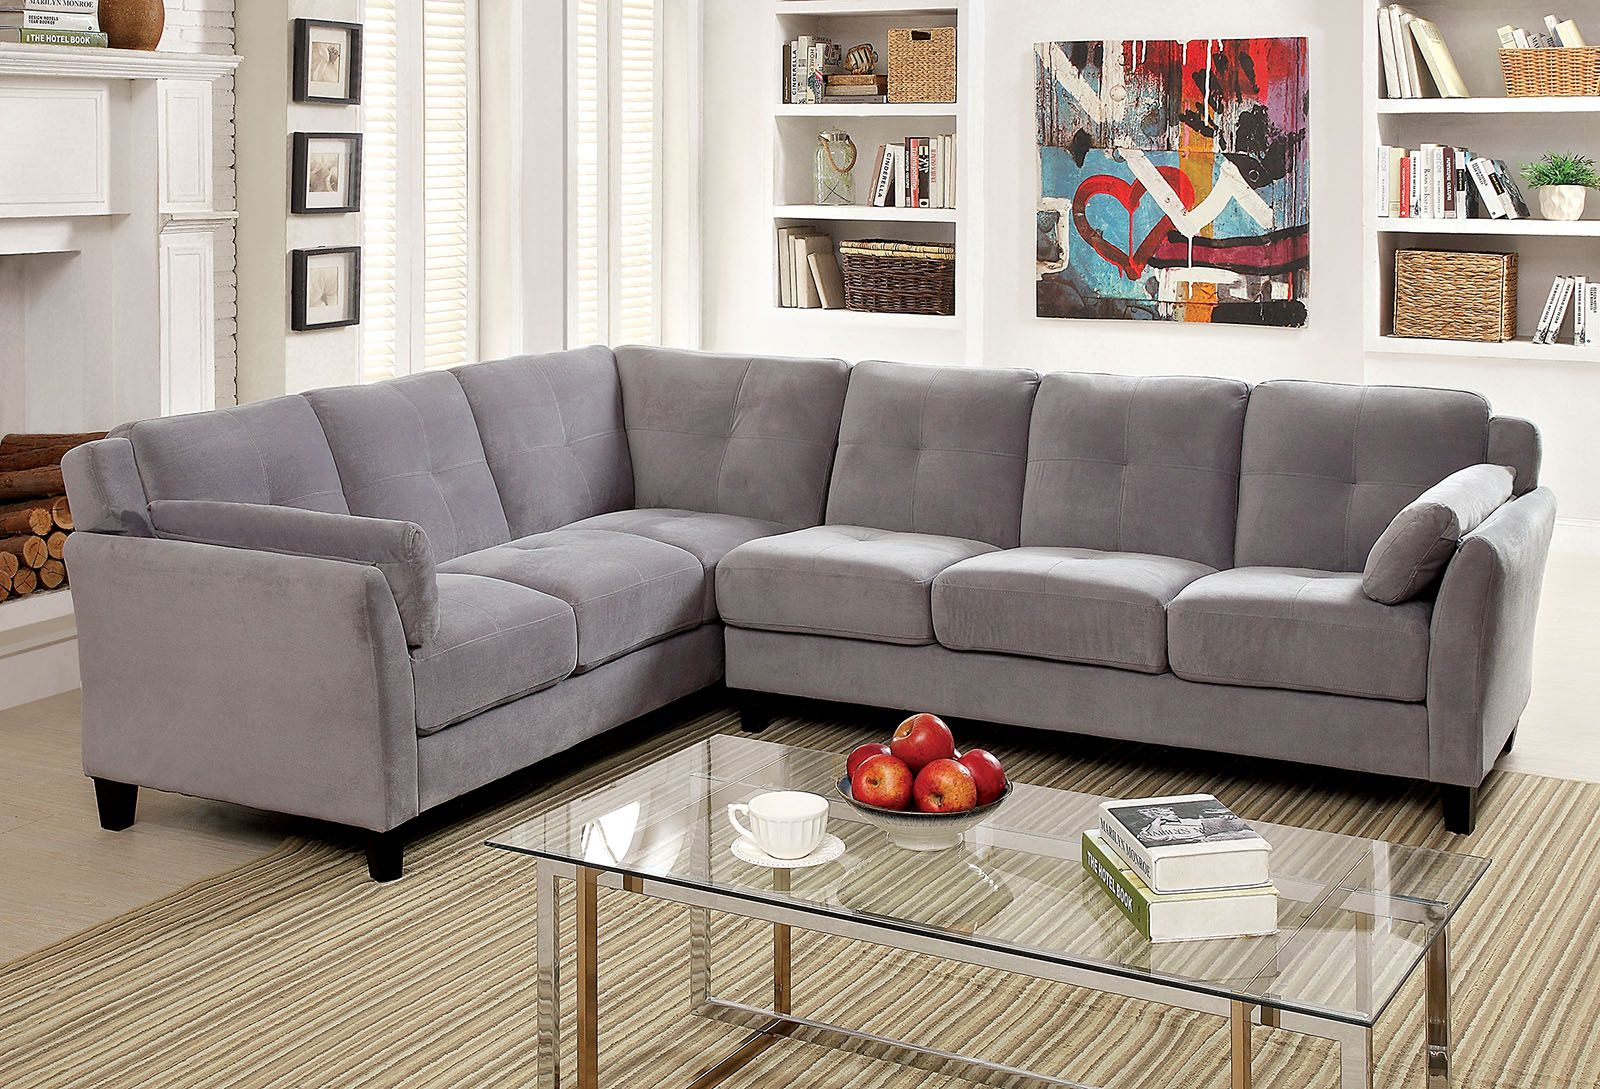 Peever 6368gy Gray Contemporary Sectional Sofa Grey Sectional Sofa Sectional Sofa Sectional Sofa Couch